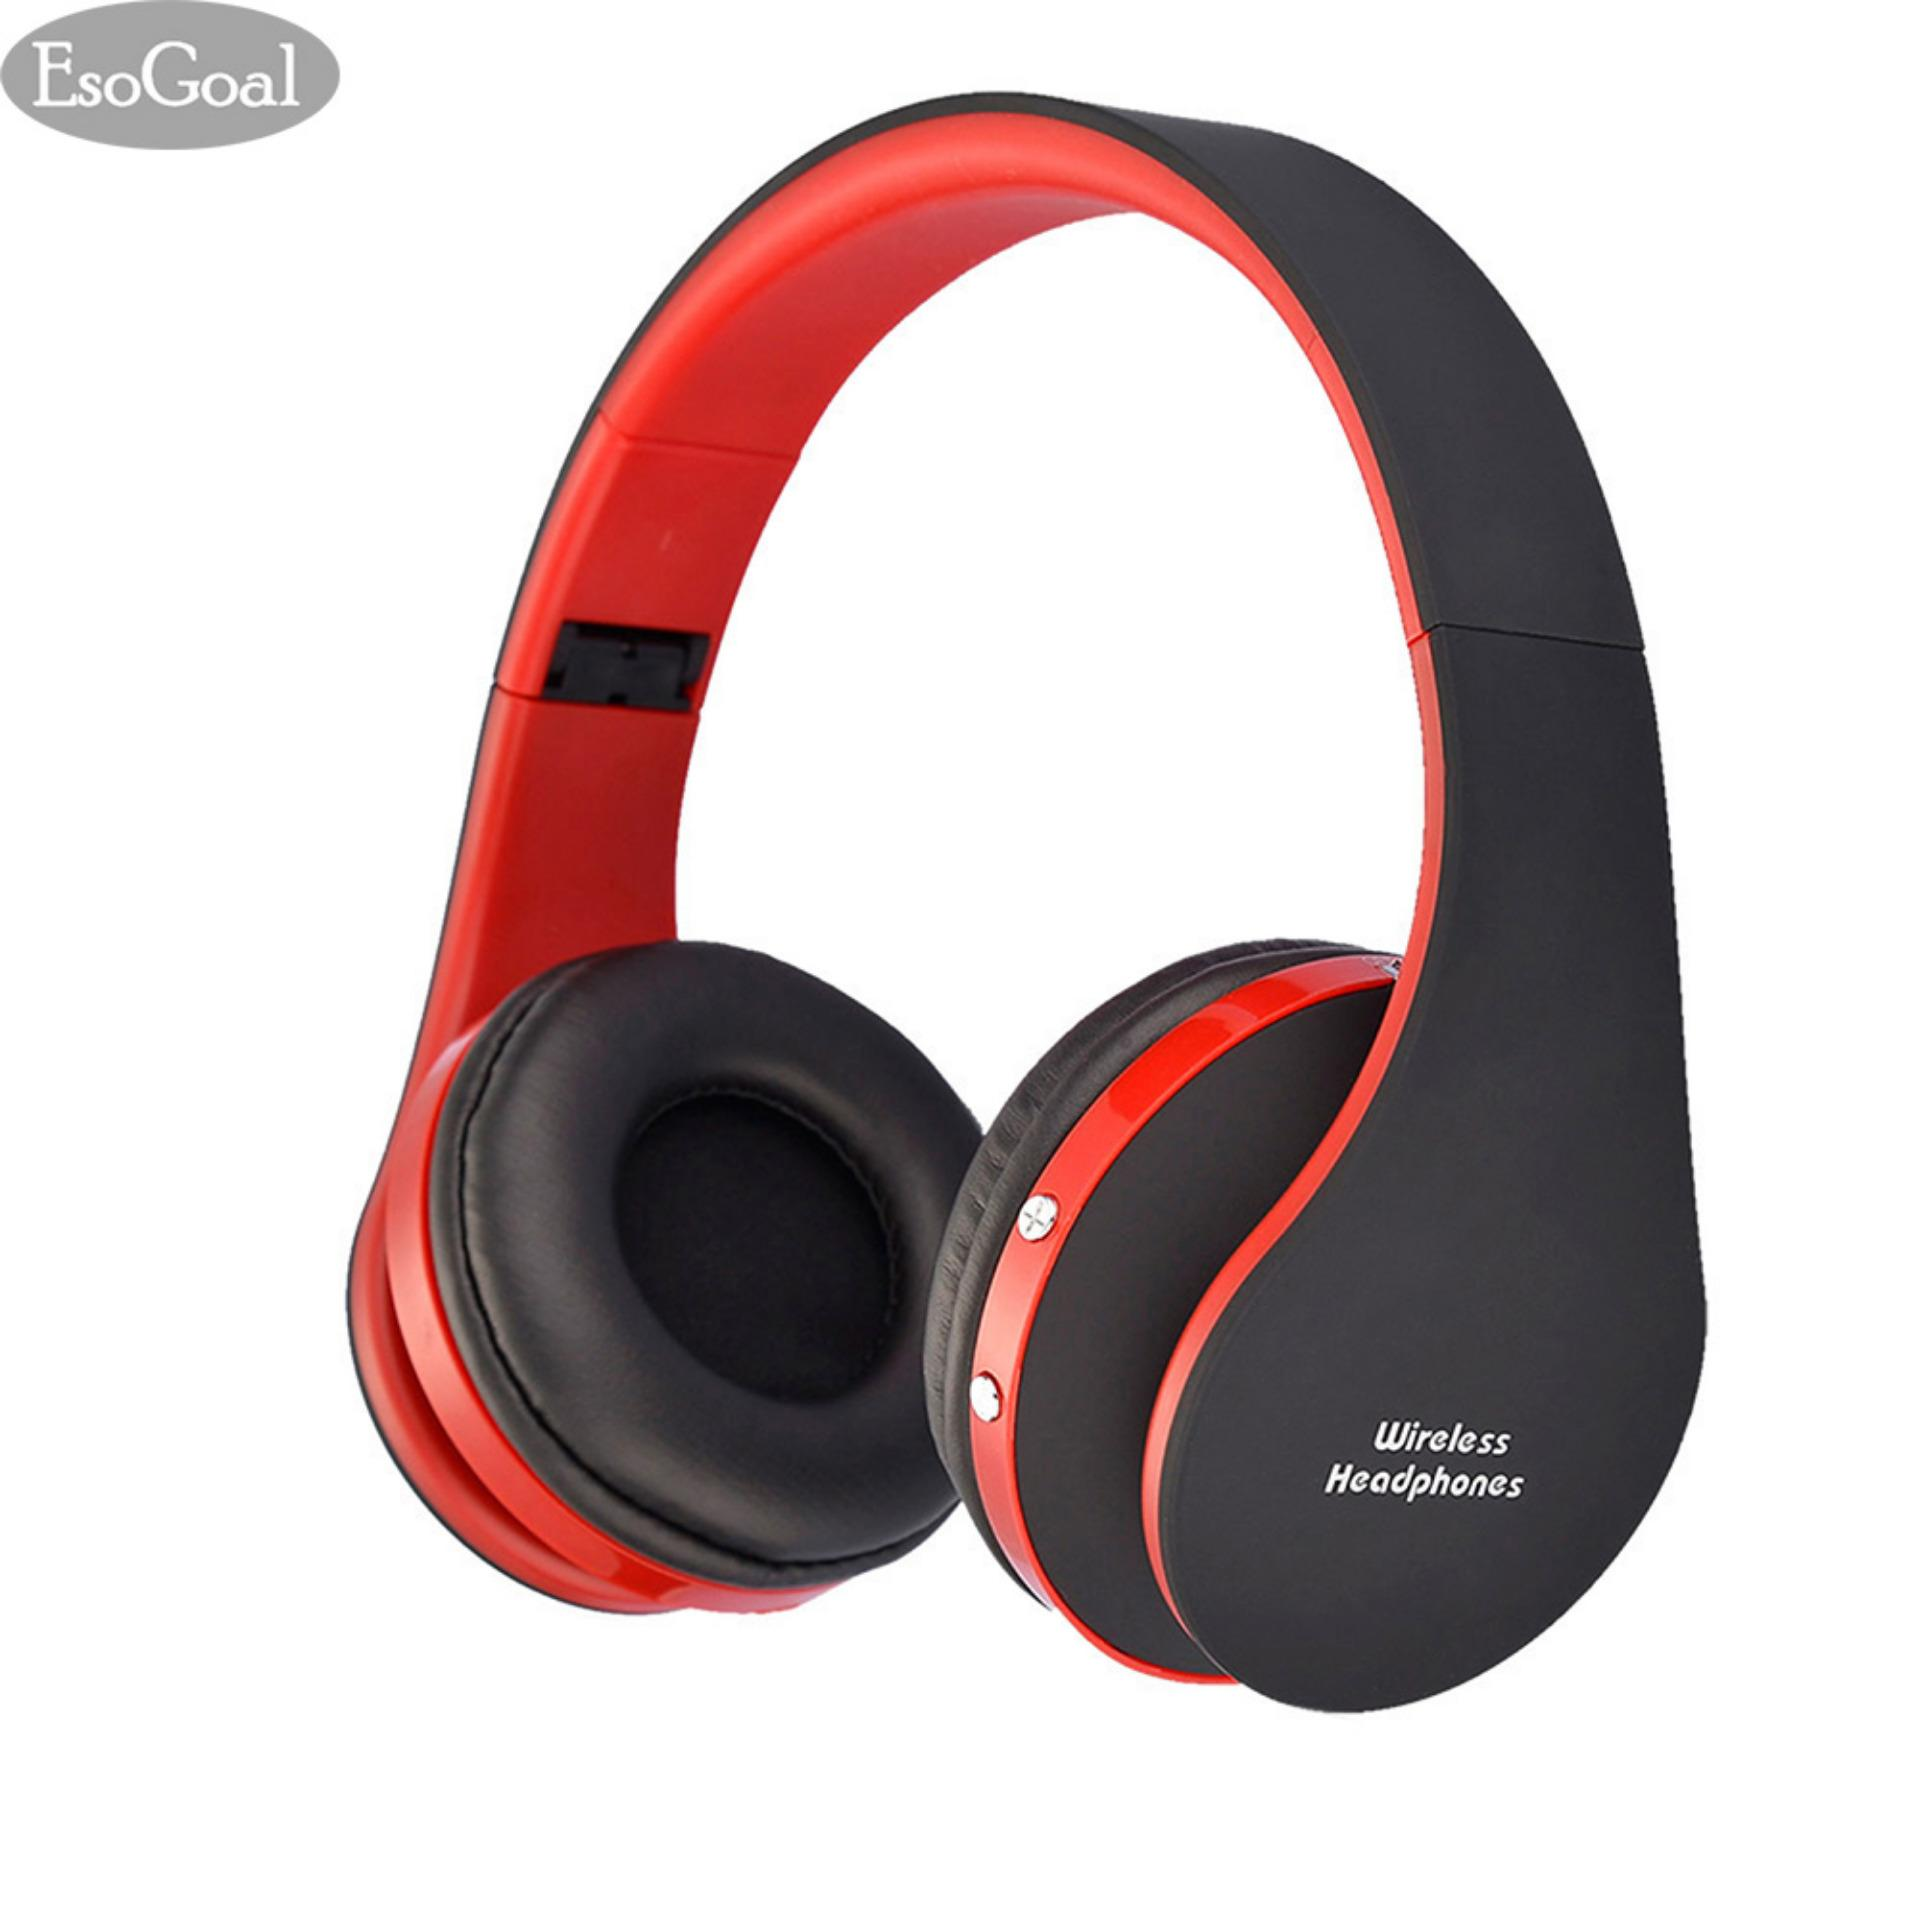 Beli Esogoal Nirkabel Bluetooth V4 1 Headphone In Ear Earphone Stereo Earbud Sport Headset Dengan Mic Merah Hitam Lengkap